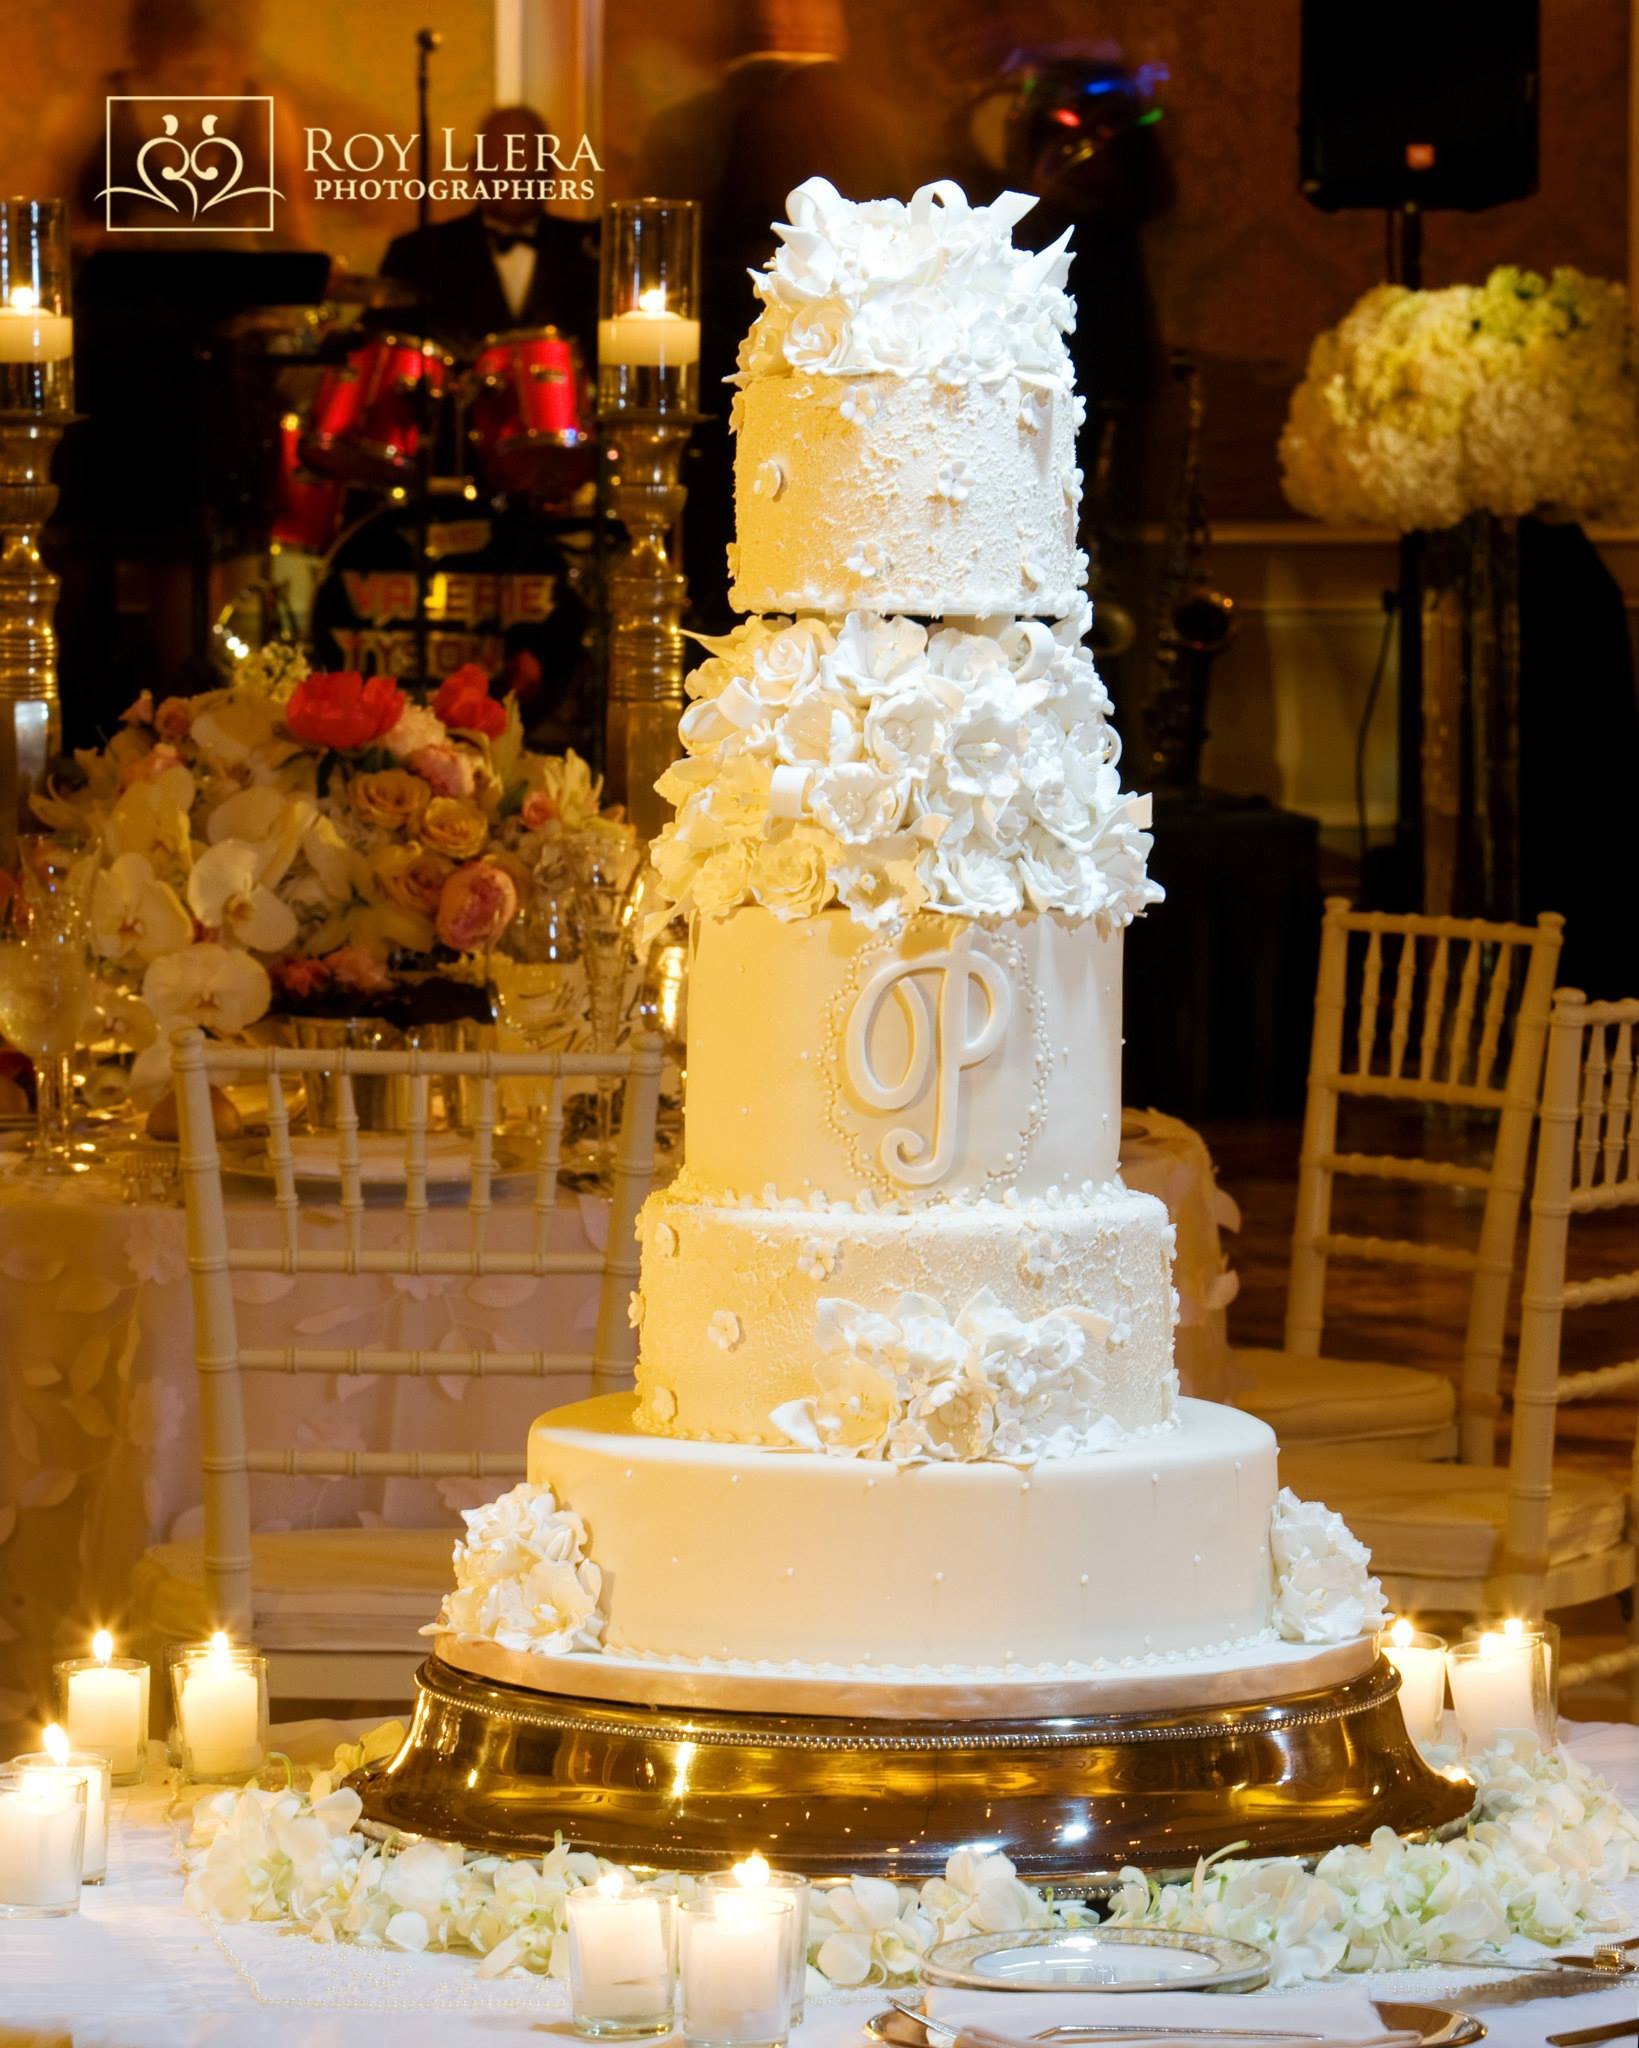 Glamorous Wedding Cakes from Elegant Temptations - MODwedding